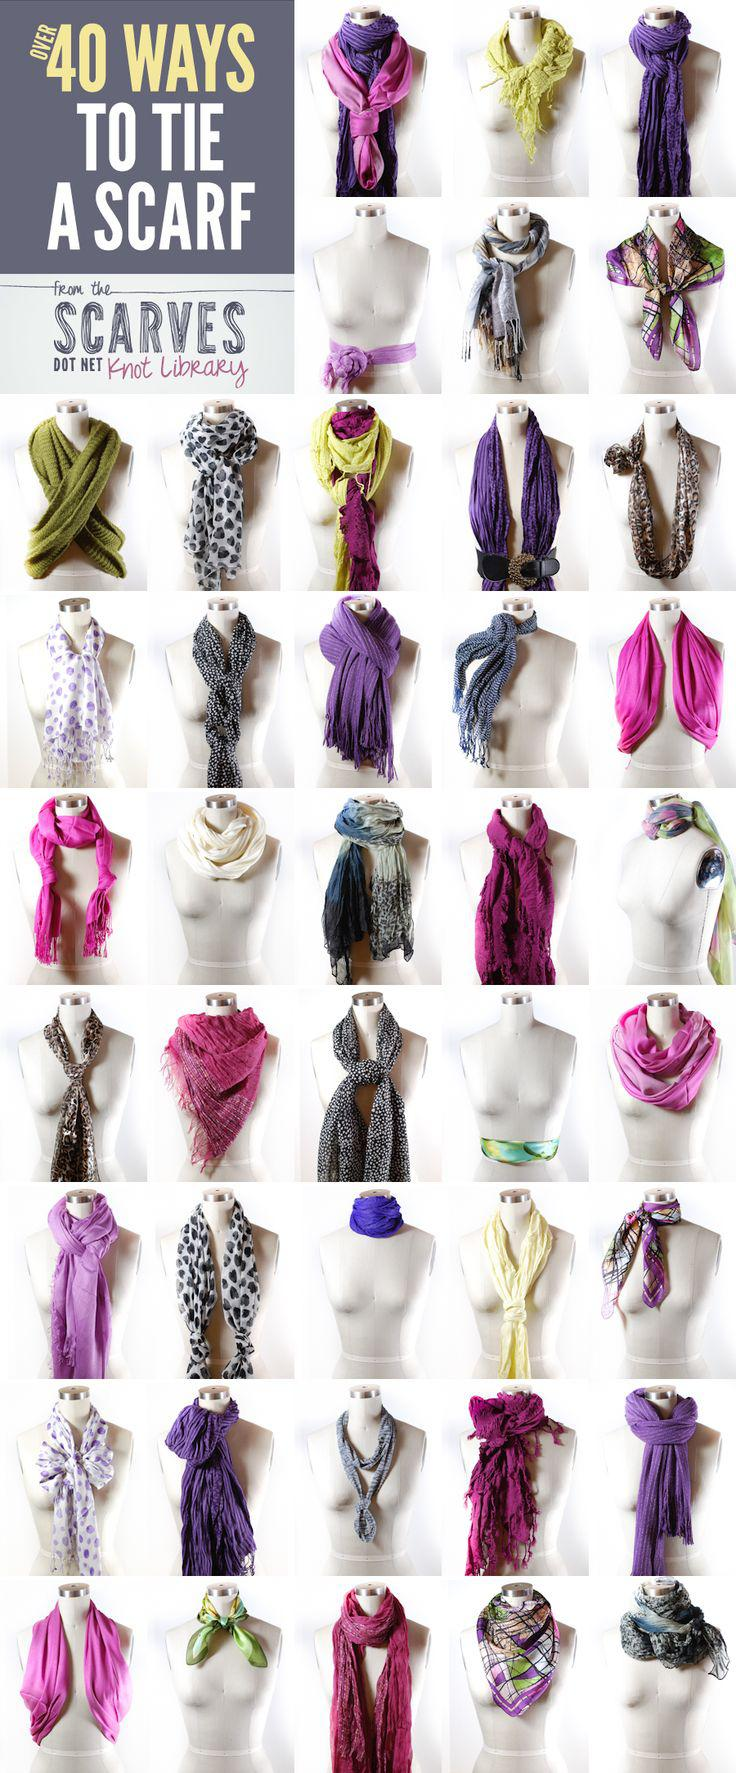 Outfits For Curvy Women : 50+ Ways to Tie a Scarf!